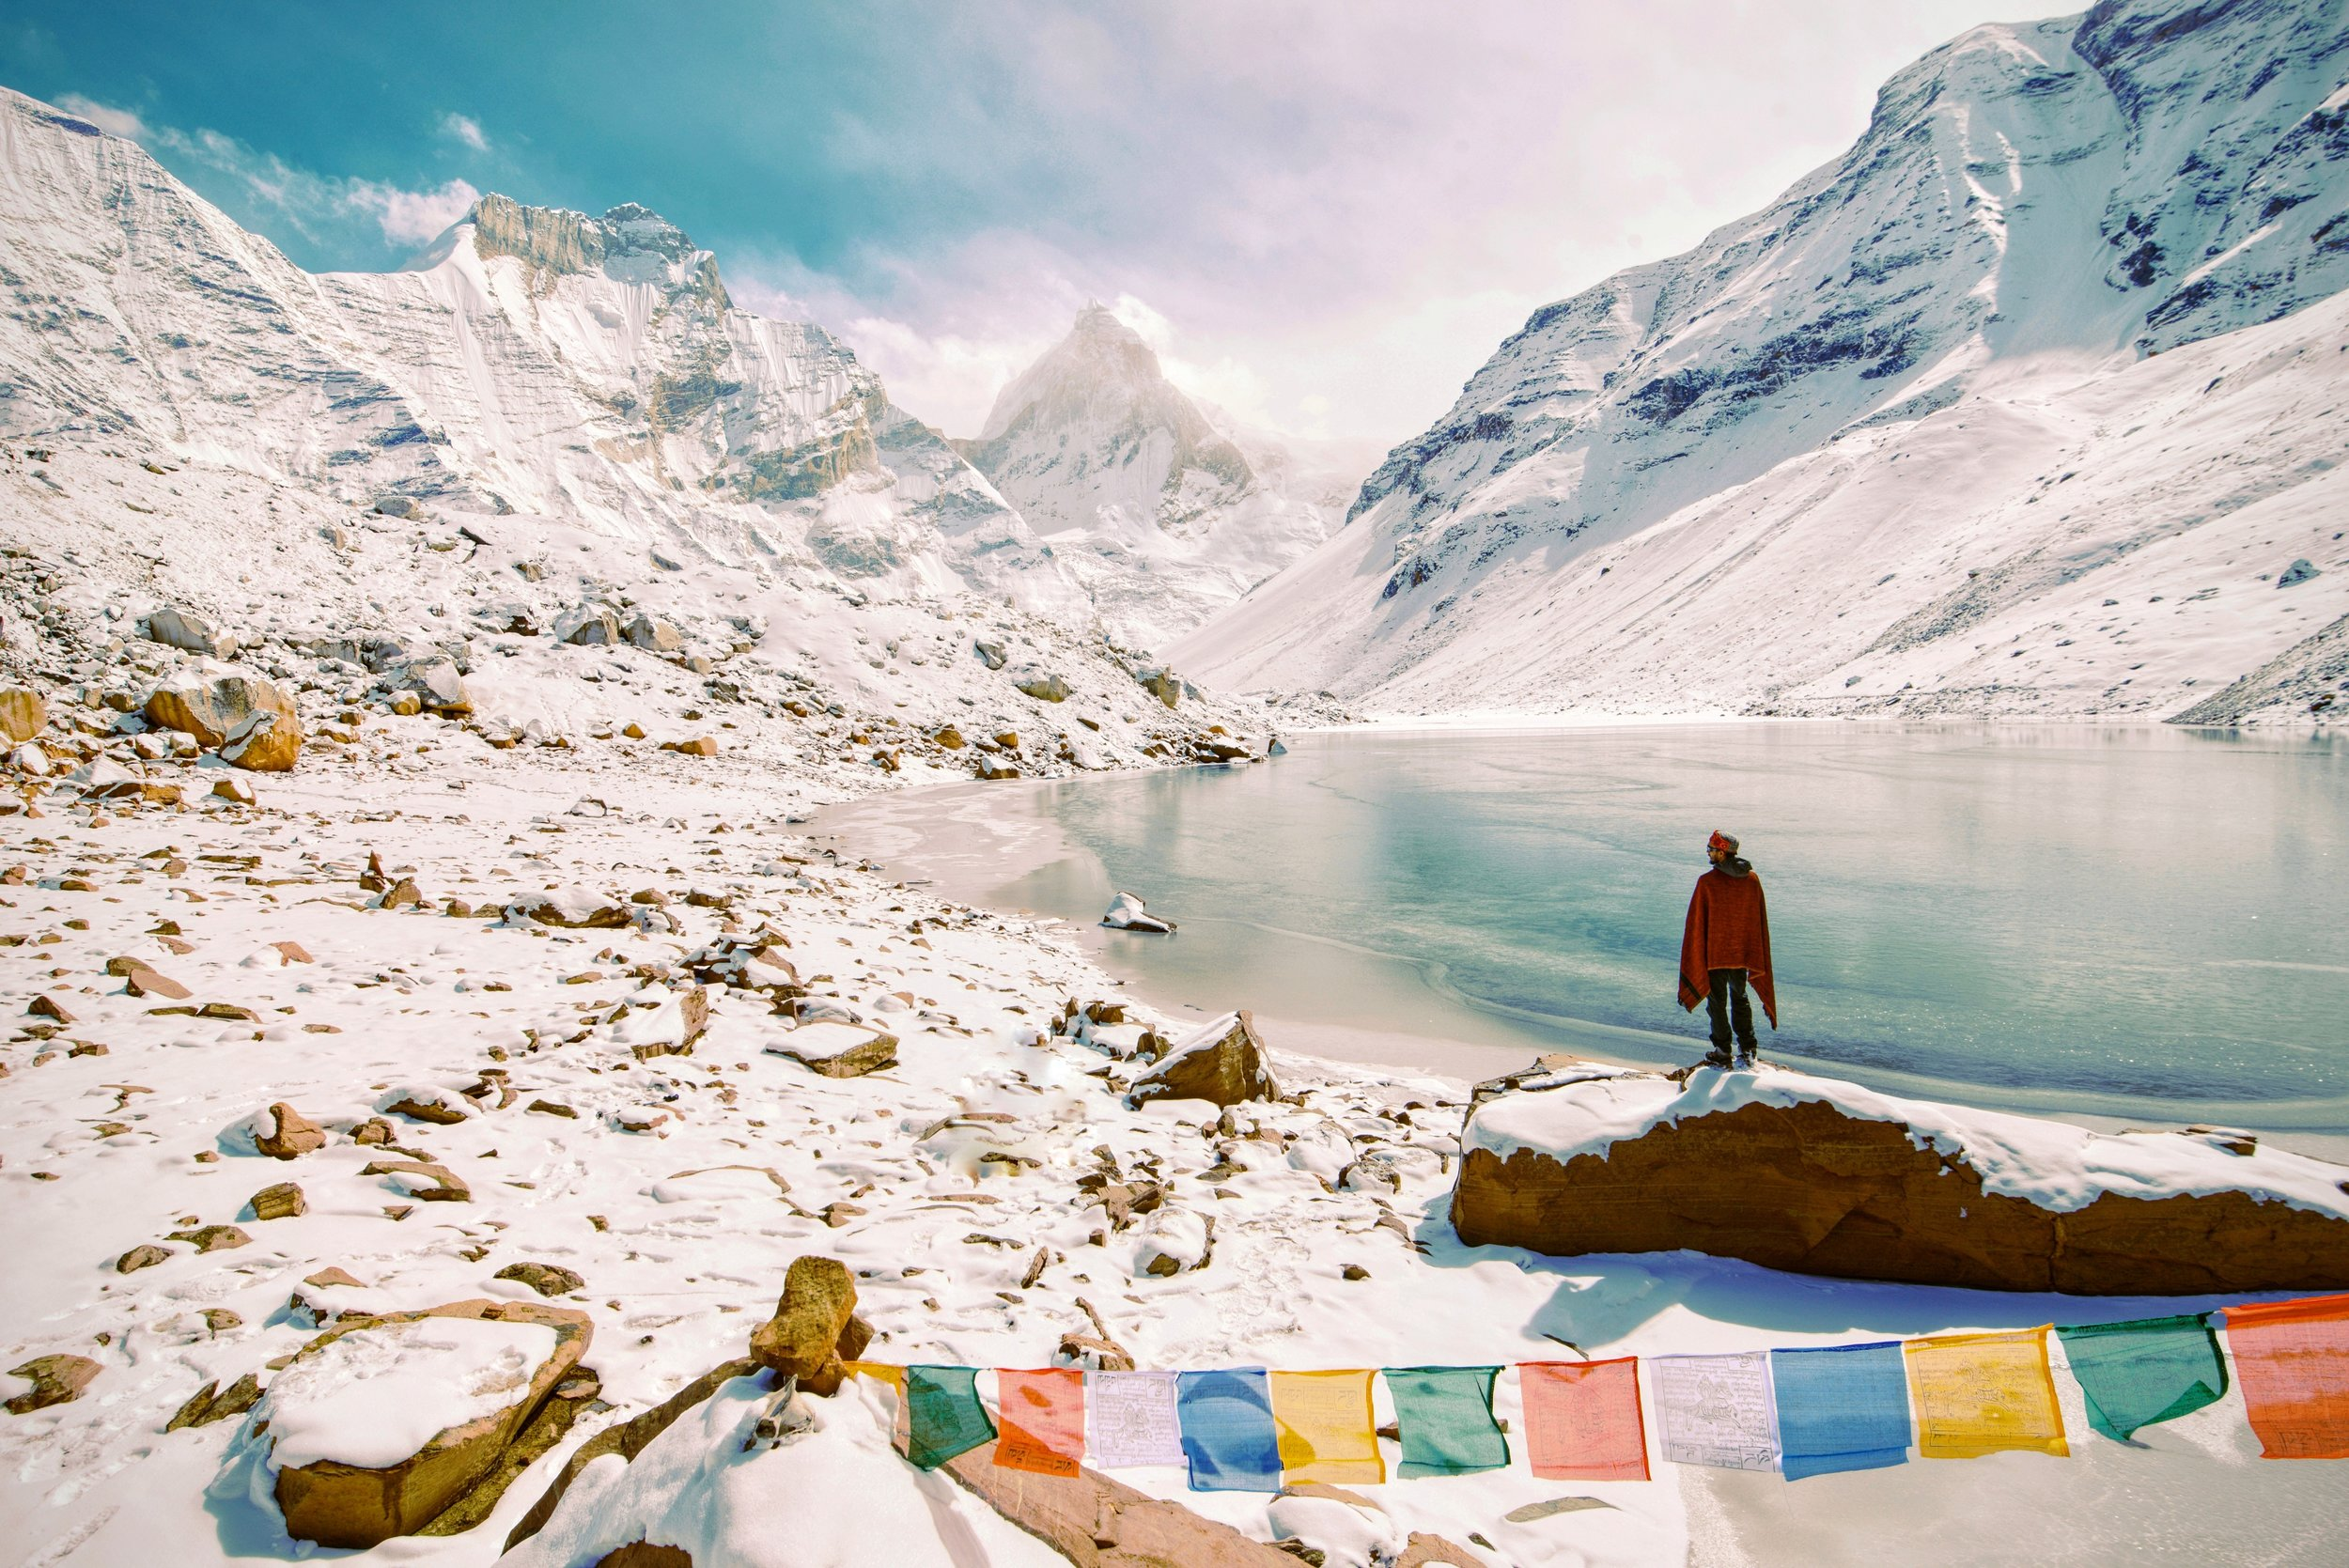 snowy white mountains with lake in Nepal